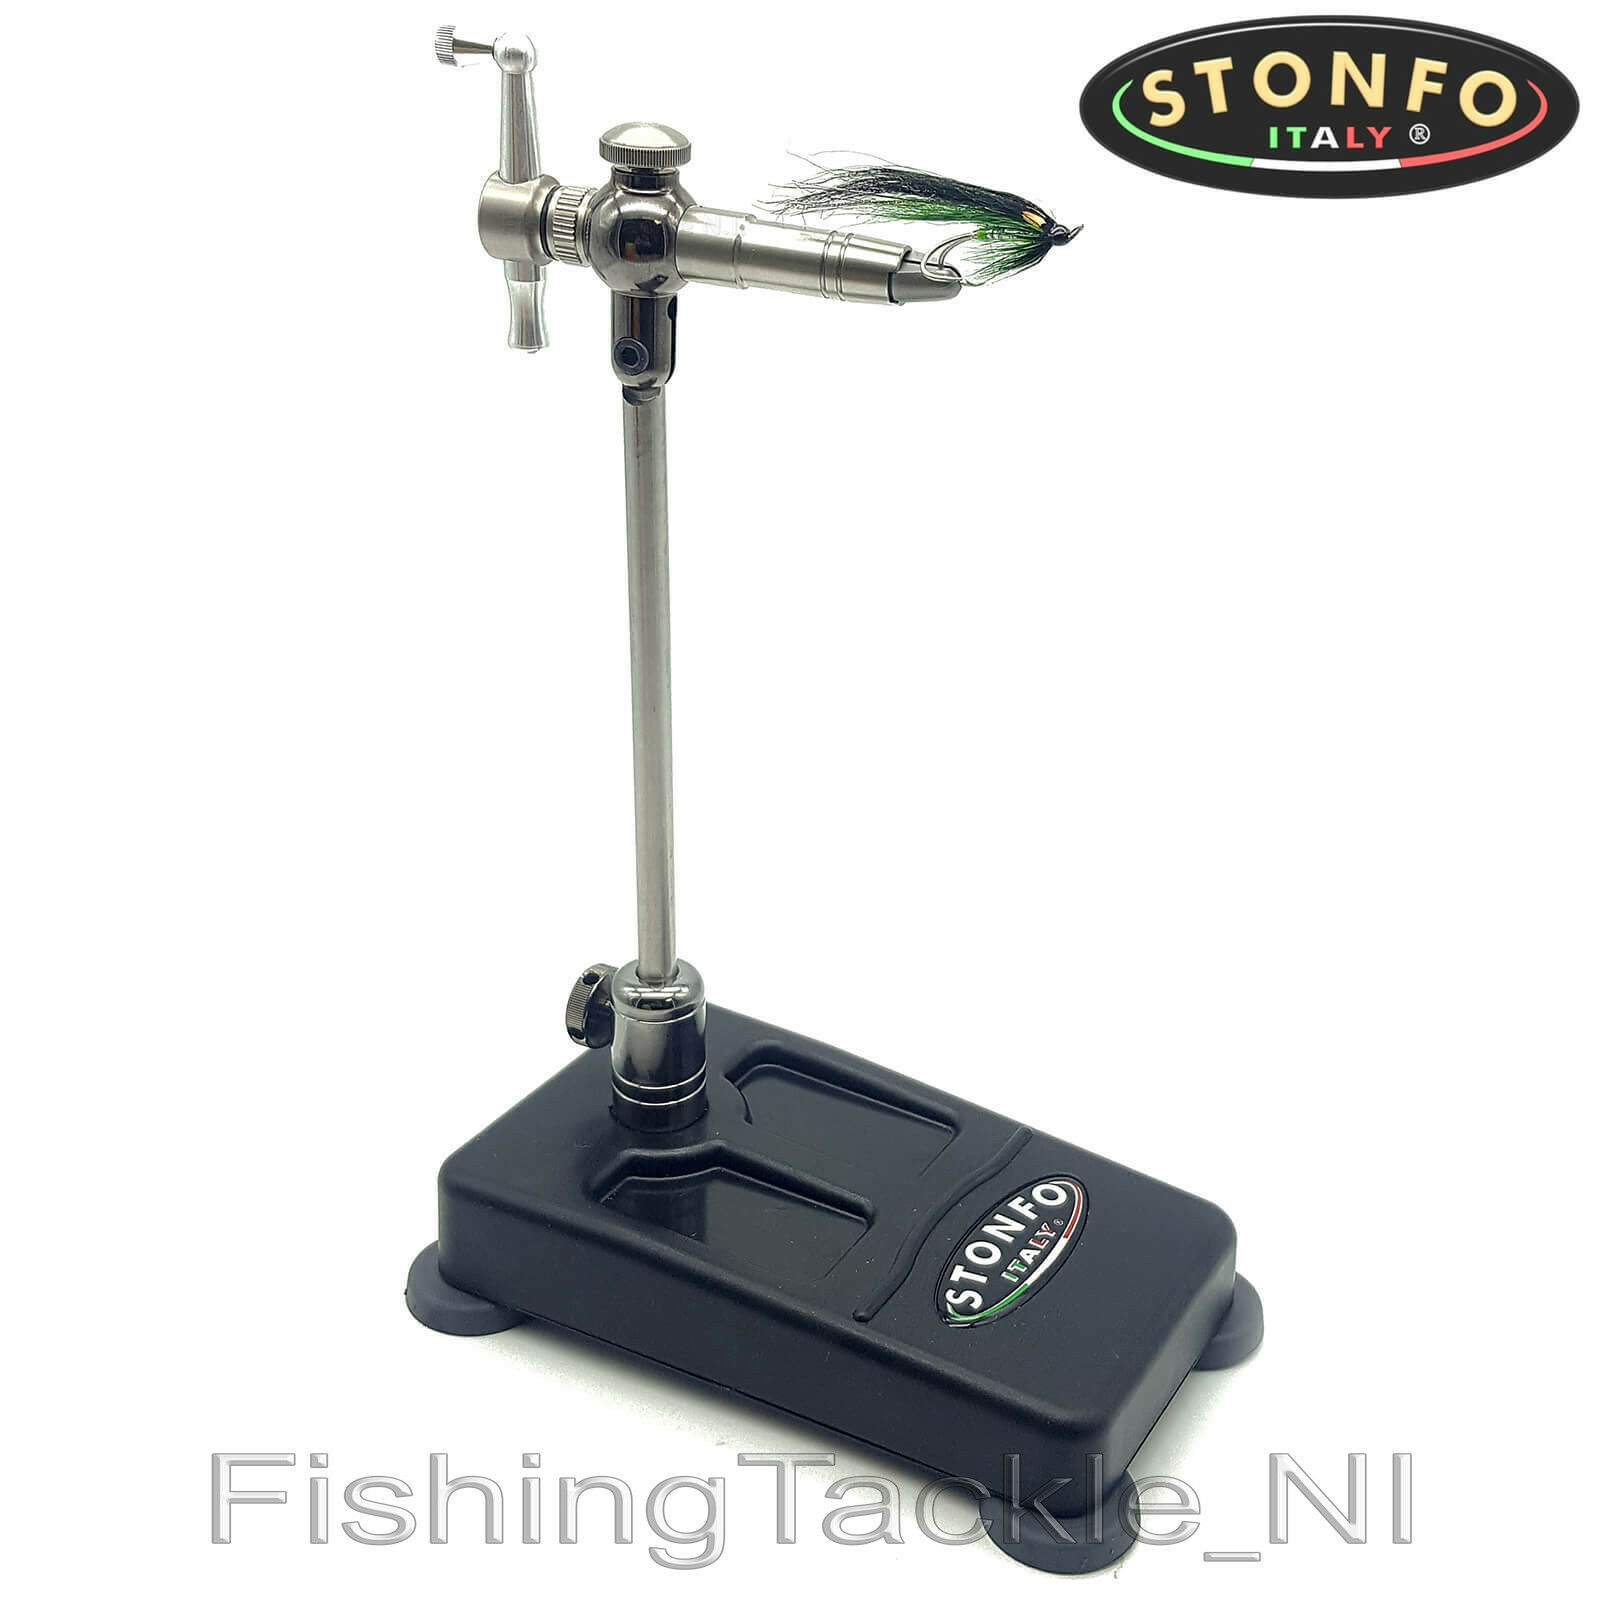 Stonfo  Morsetto Flylab Base Professional redary Fly Tying Vise Fishing  fashionable